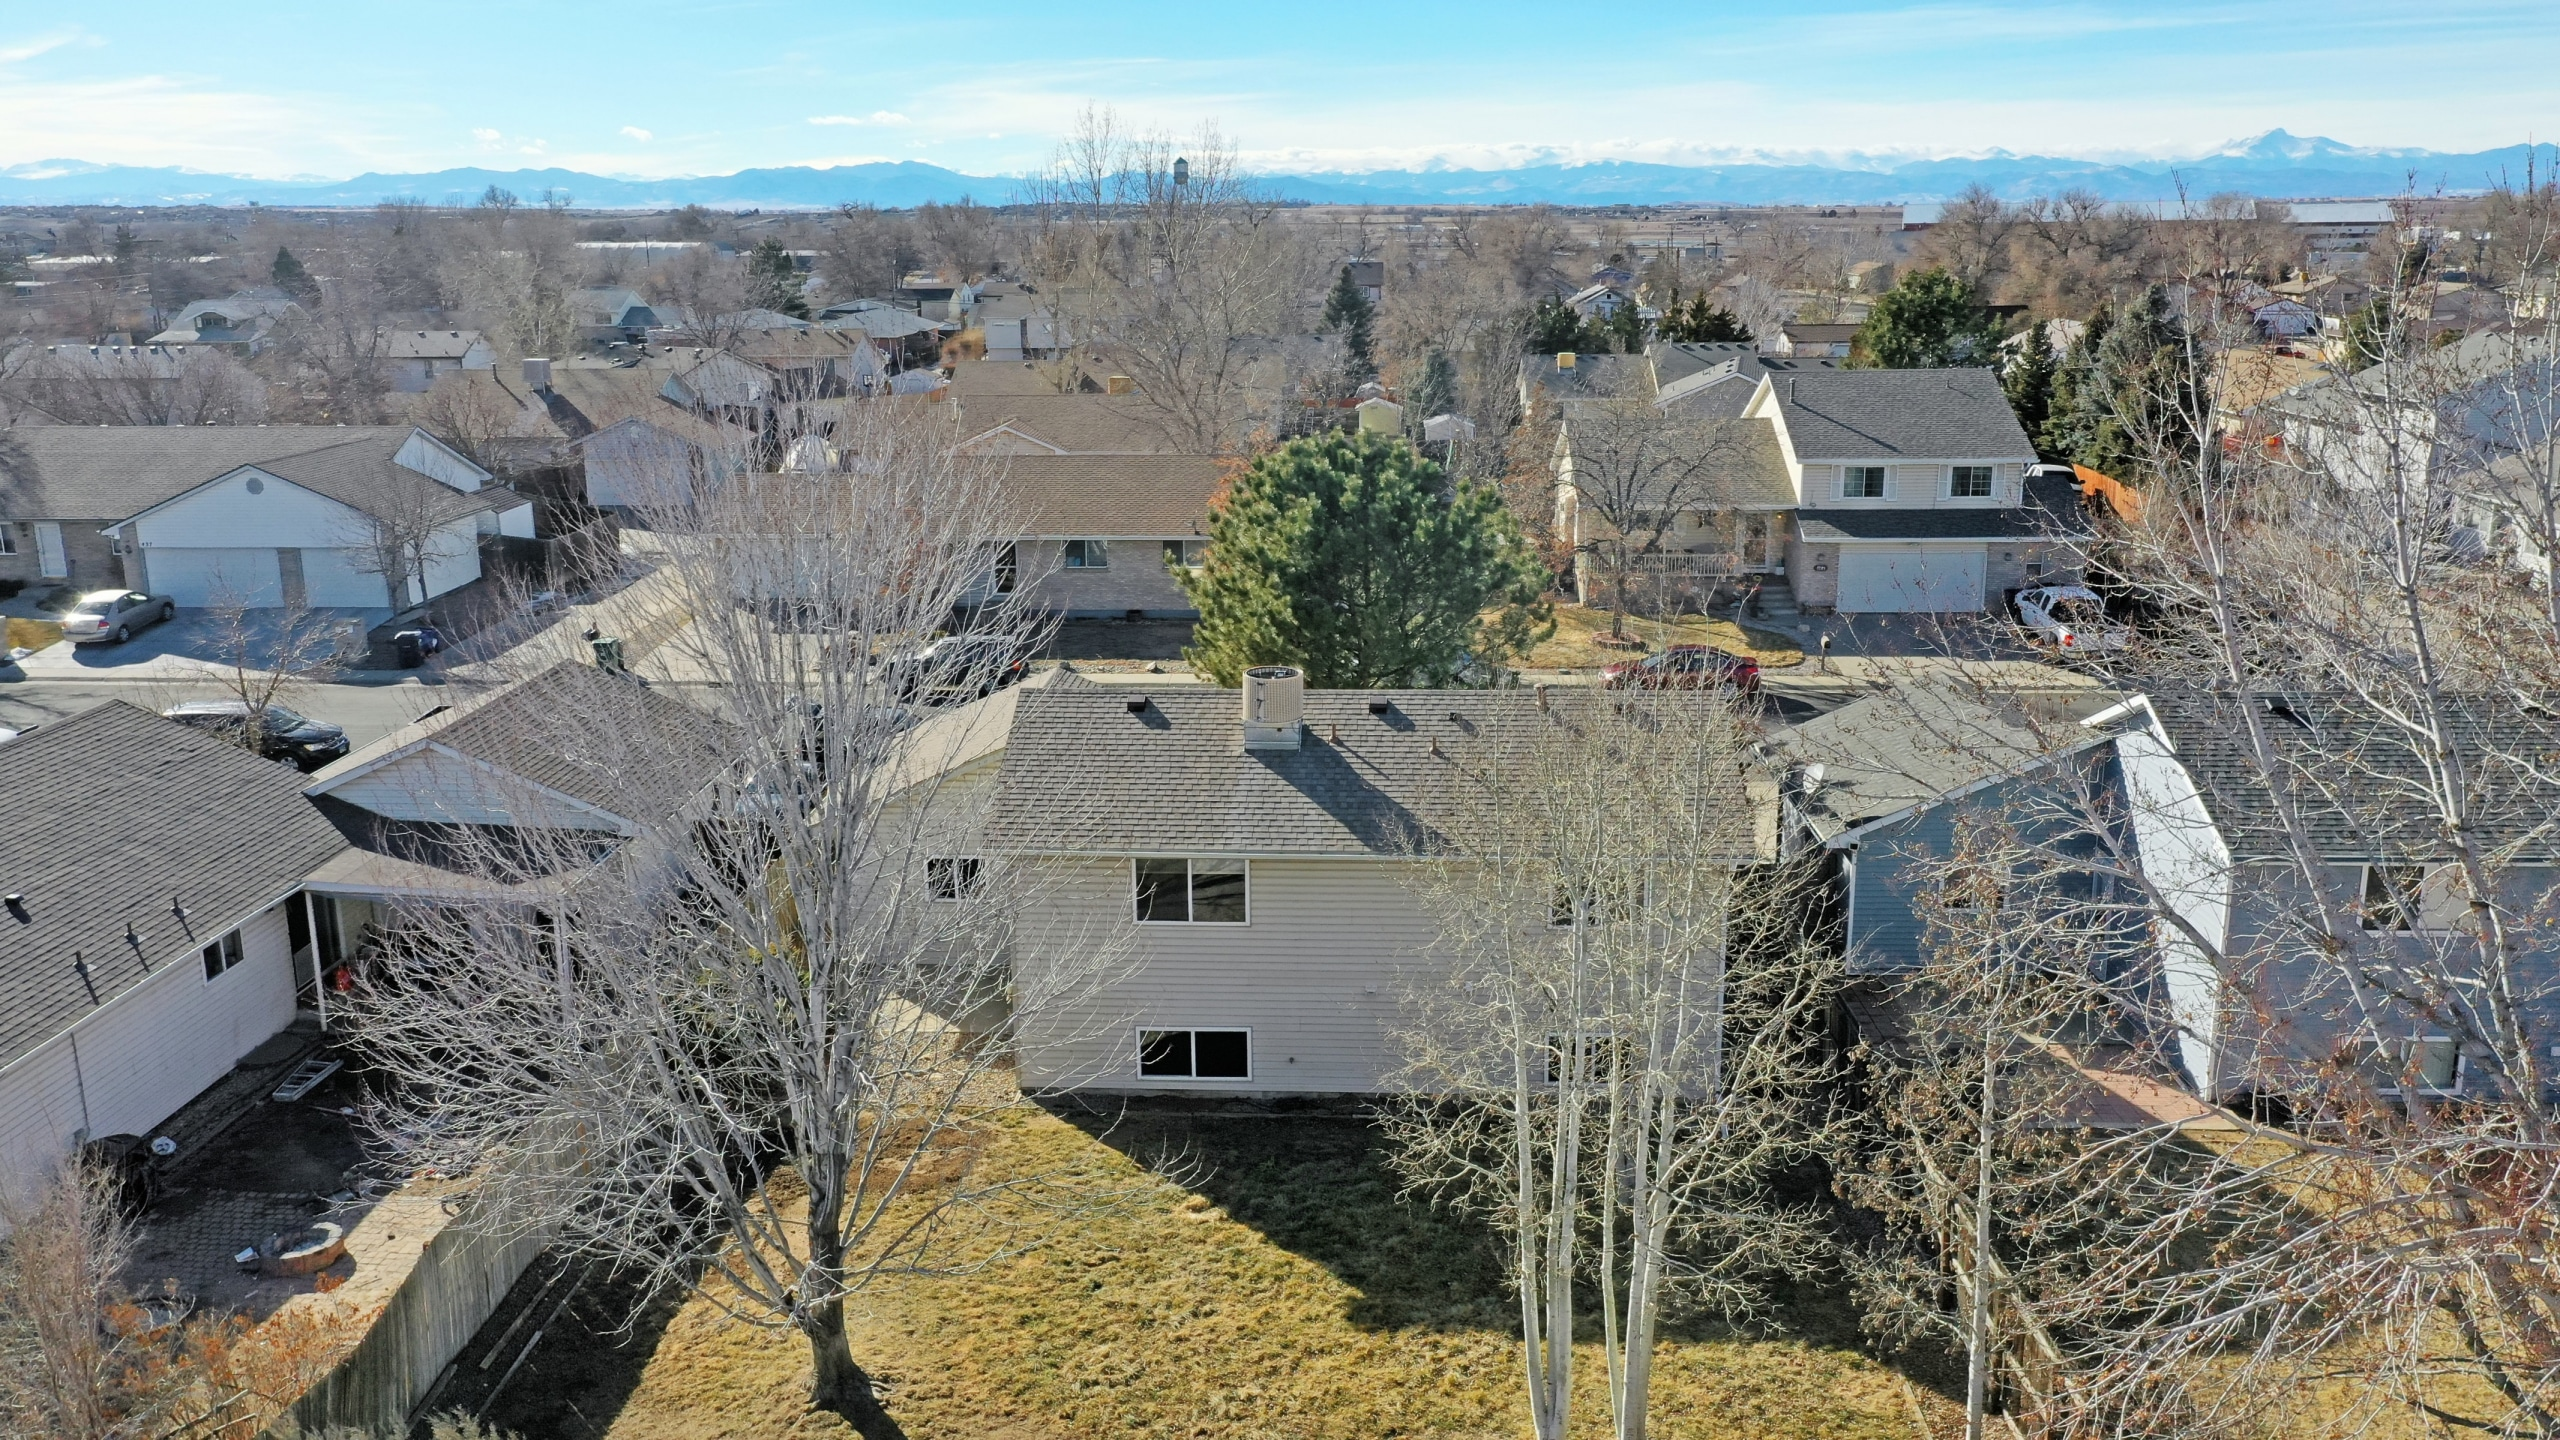 Brighton house for sale aerial image with gorgeouse mountain views